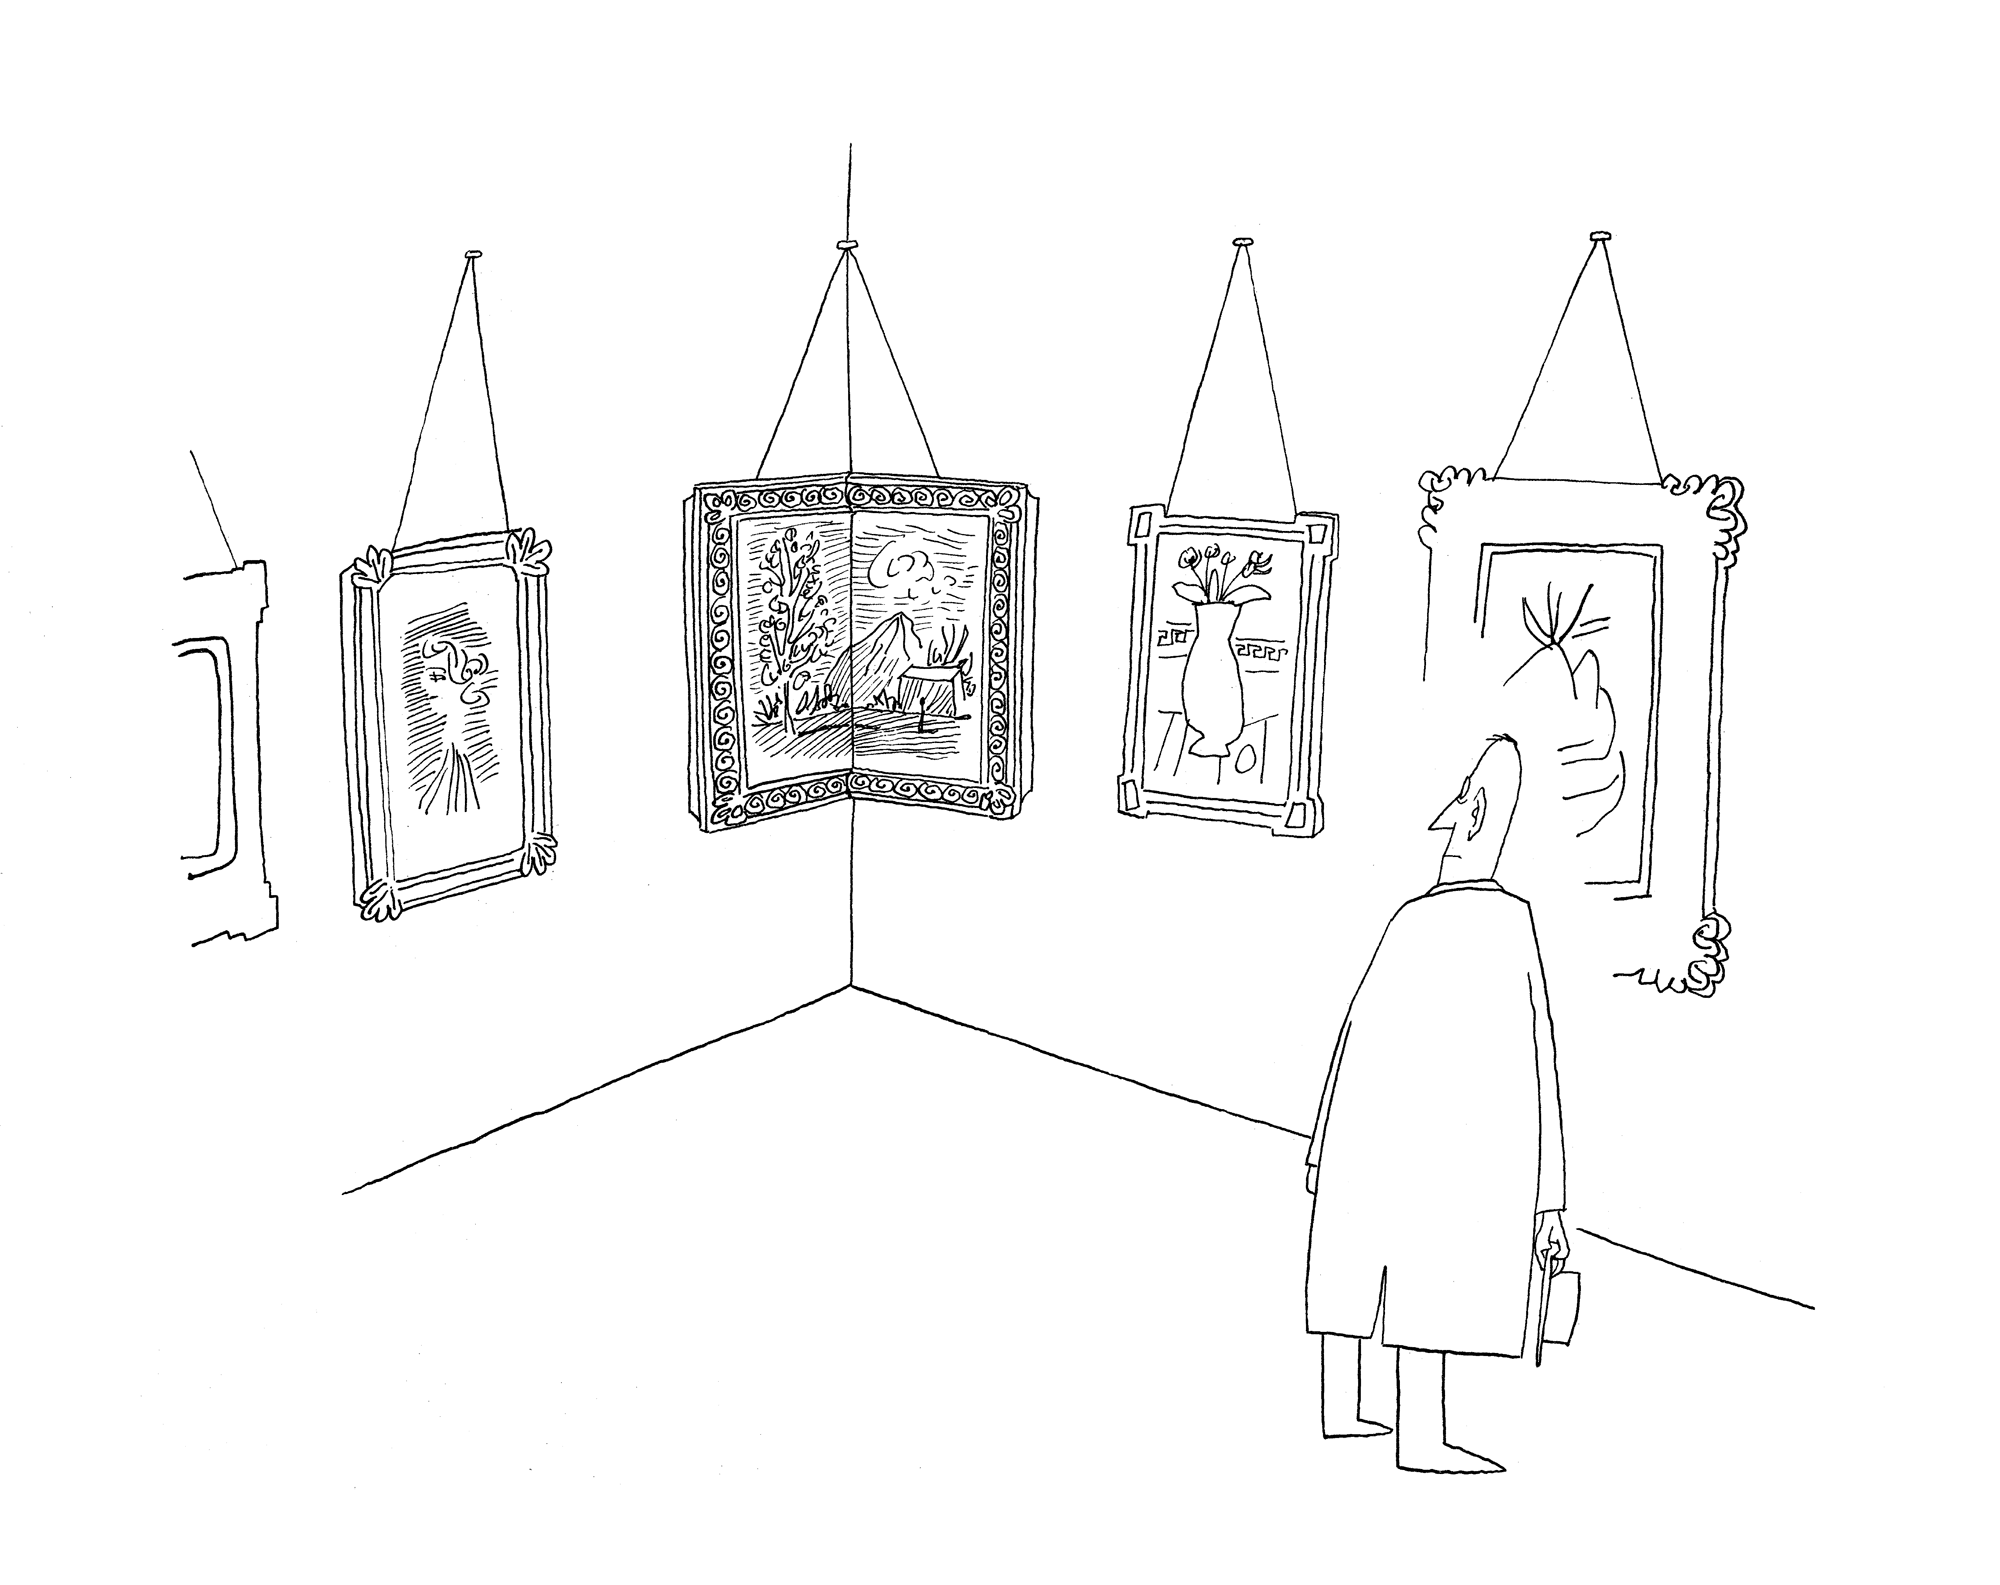 Drawing in <em>The New Yorker</em>, April 4, 1946.